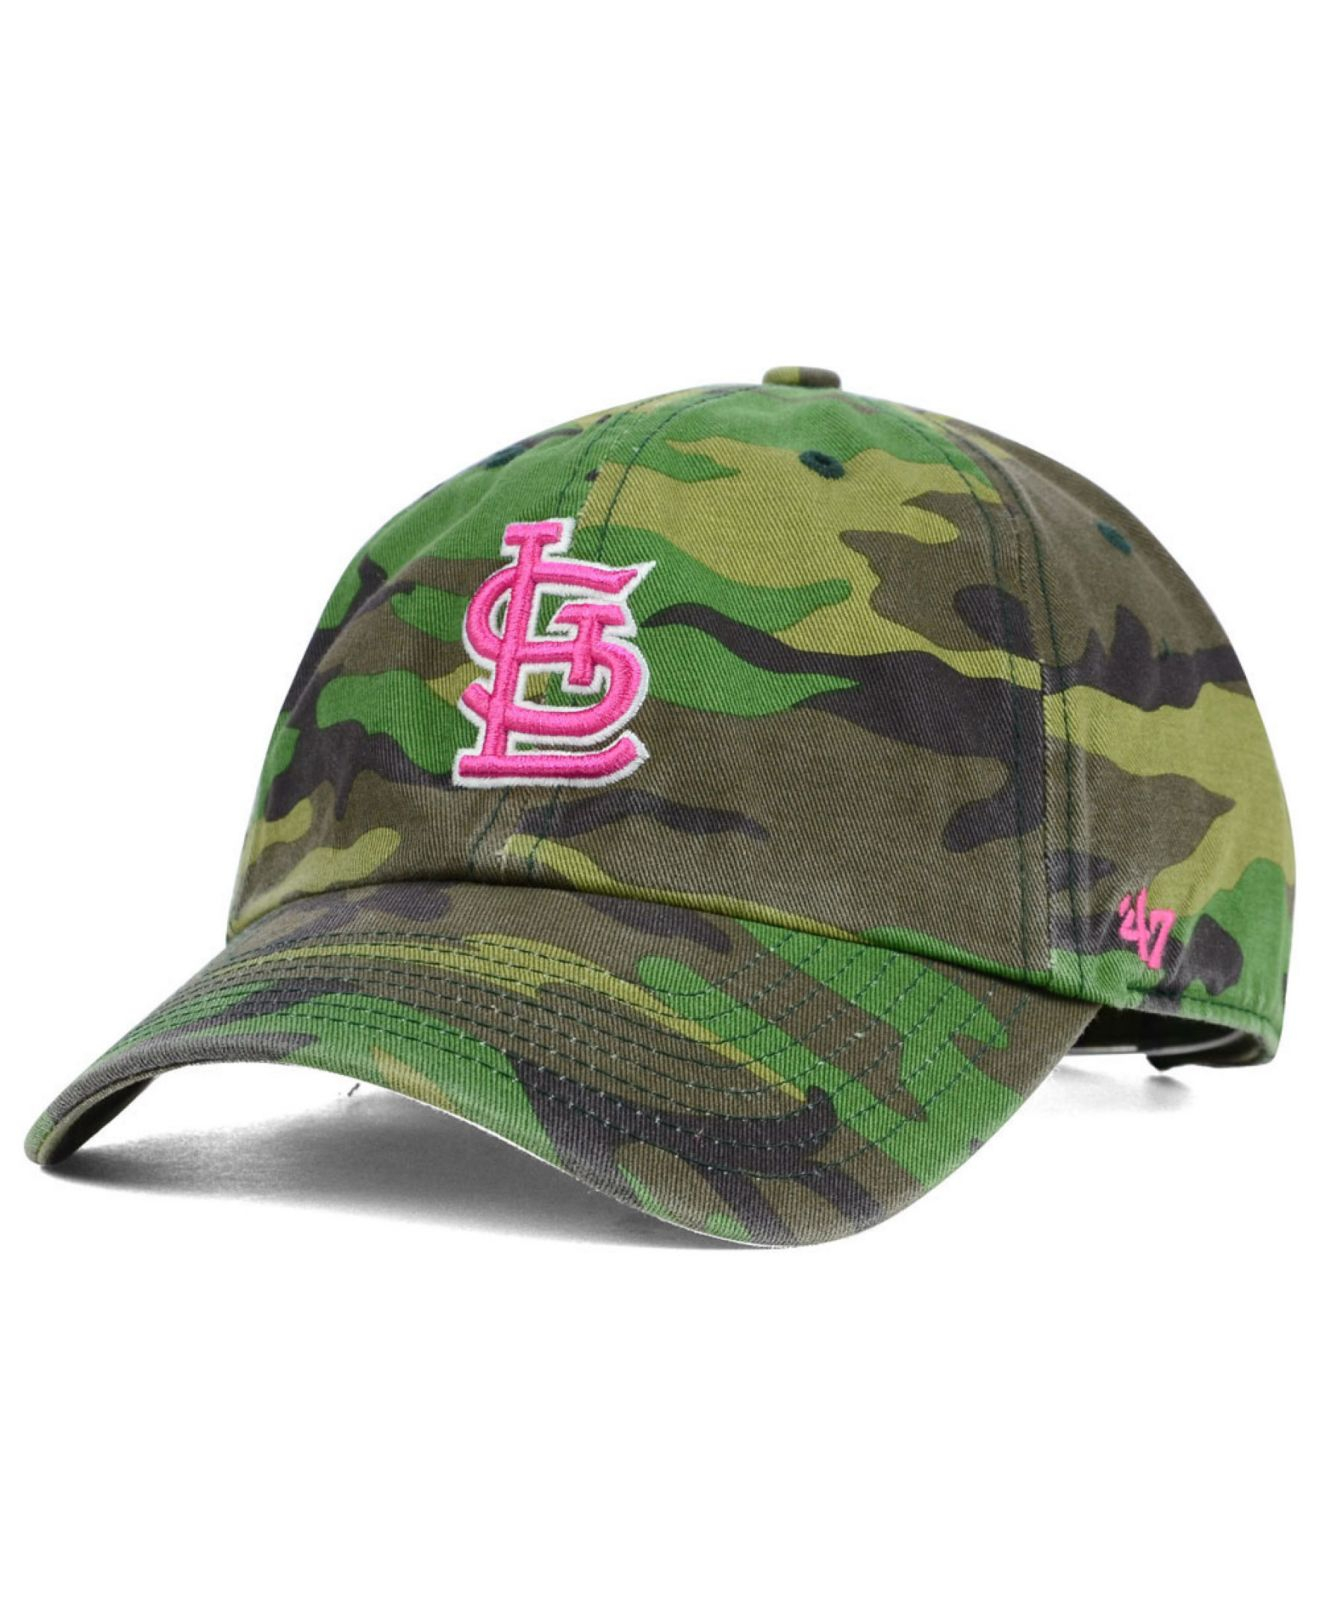 online store fca8c 04404 ... reduced lyst 47 brand womens st. louis cardinals clean up cap in green  5f520 0cd32